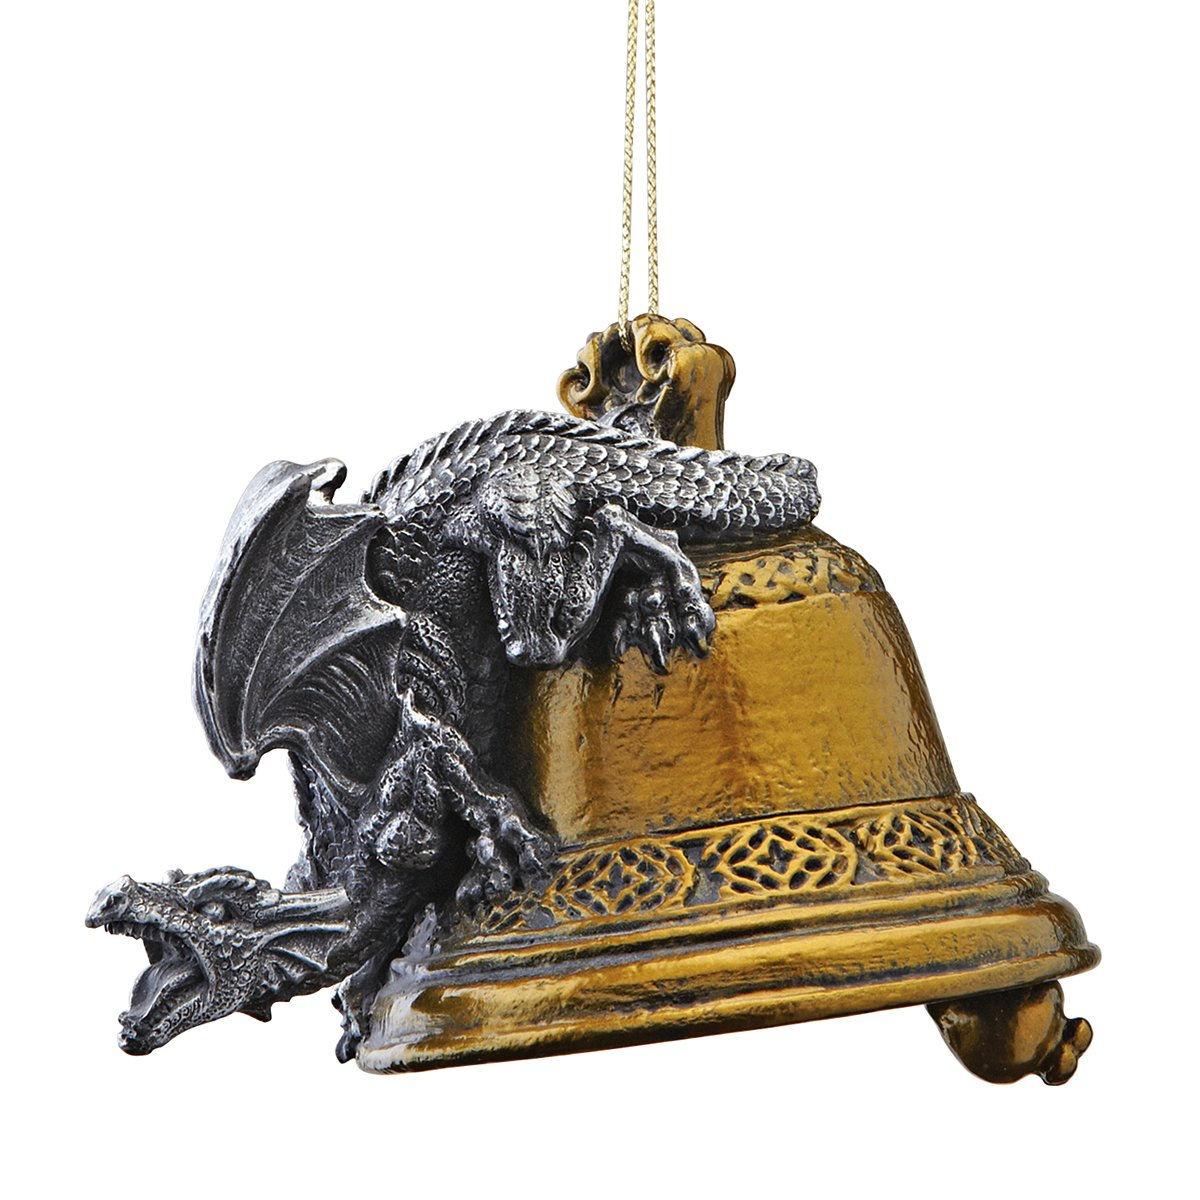 Design Toscano Christmas Tree Ornaments Dragon Statue Christmas Decorations QS94145 Candy Cane and ABEL The Dragon 2017 Holiday Ornament